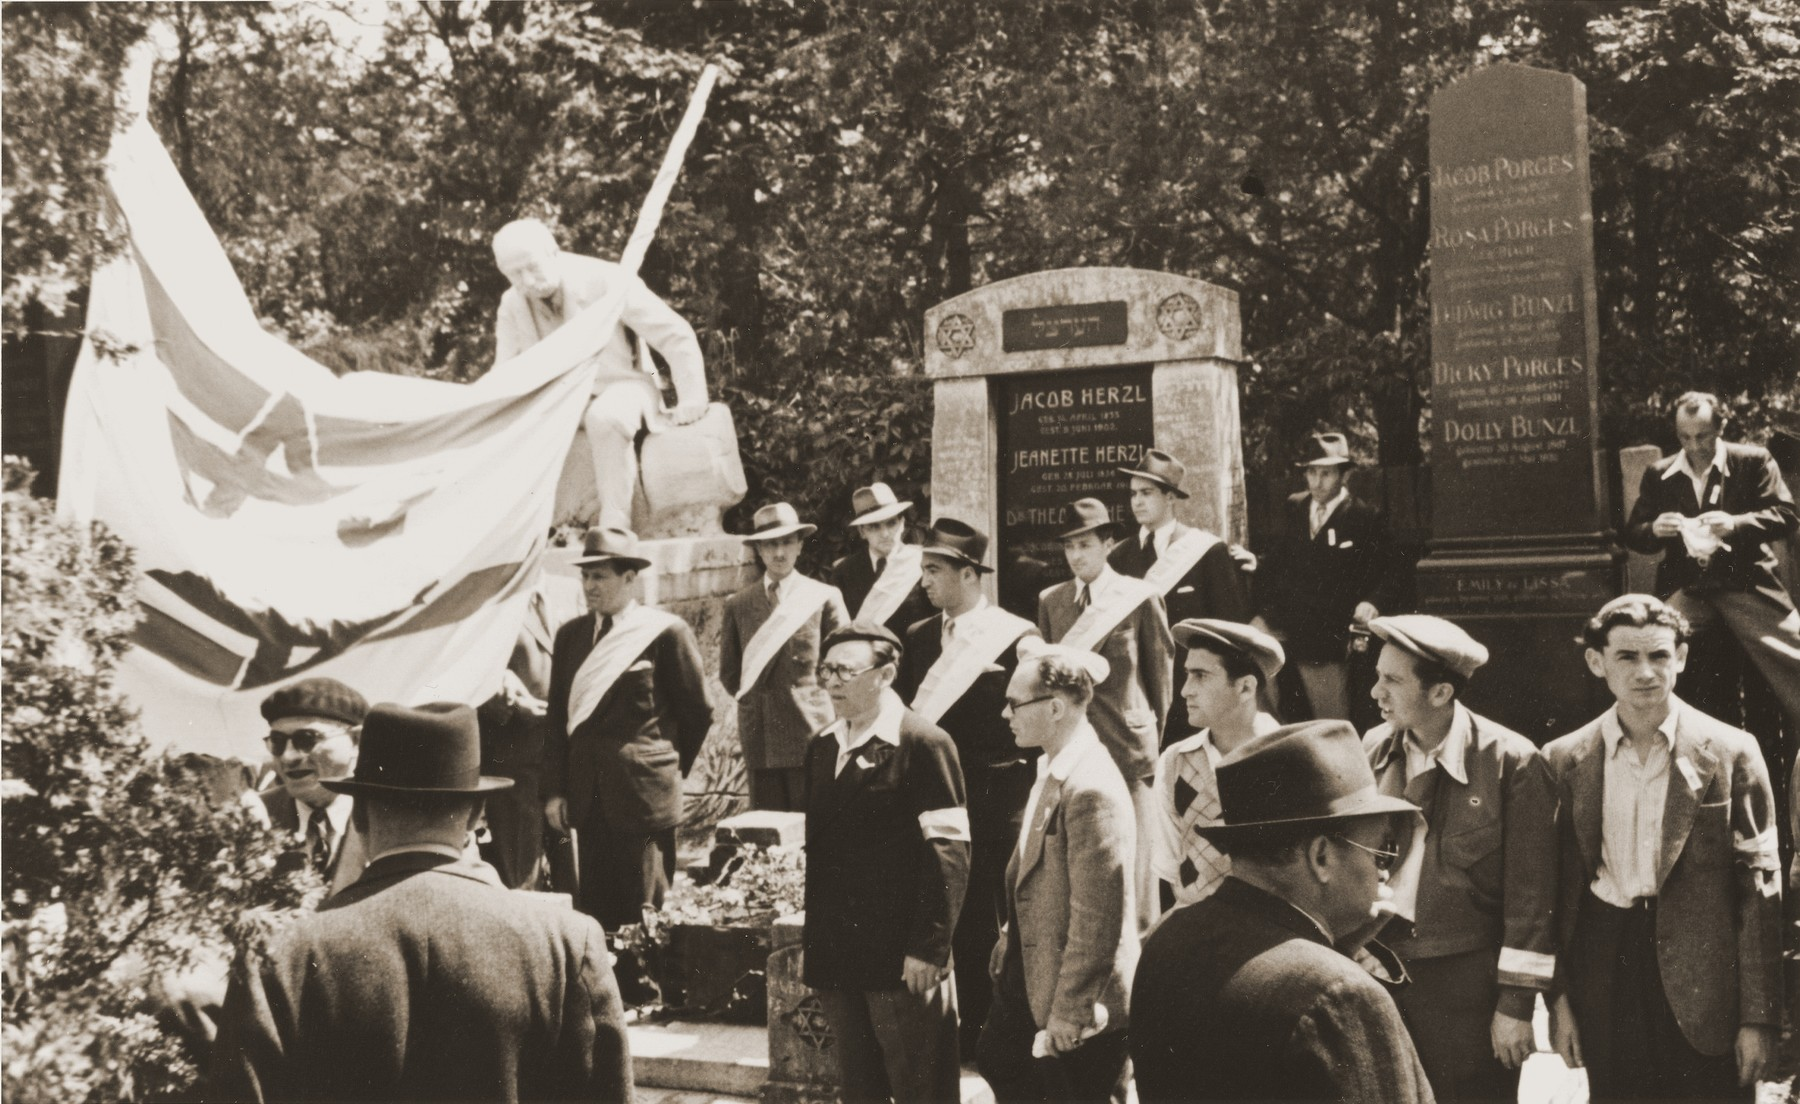 Members of the Betar Zionist youth movement demonstrate against British policy in Palestine at the tomb of Theodor Herzl in the Jewish cemetery in Vienna.    The demonstration was timed to coincide with the visit of the United Nations Special Commission on Palestine to Vienna.